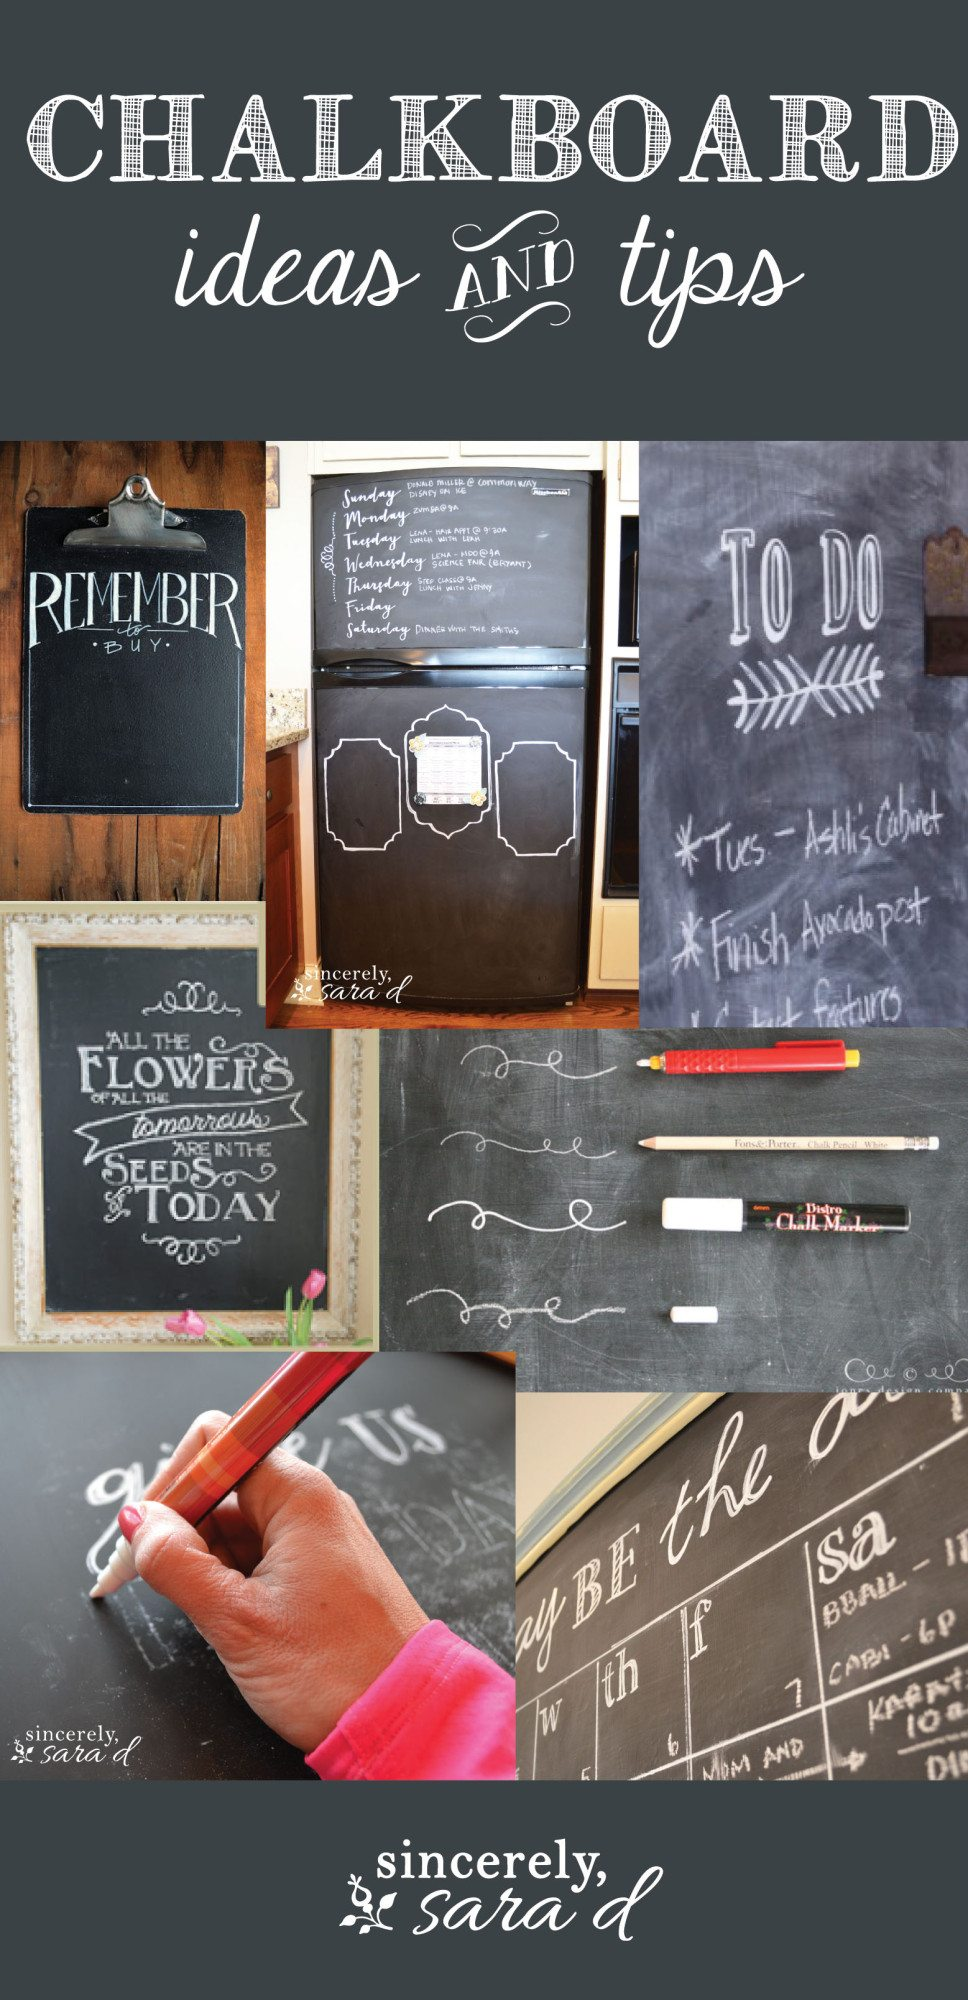 Chalkboard Ideas and Tips